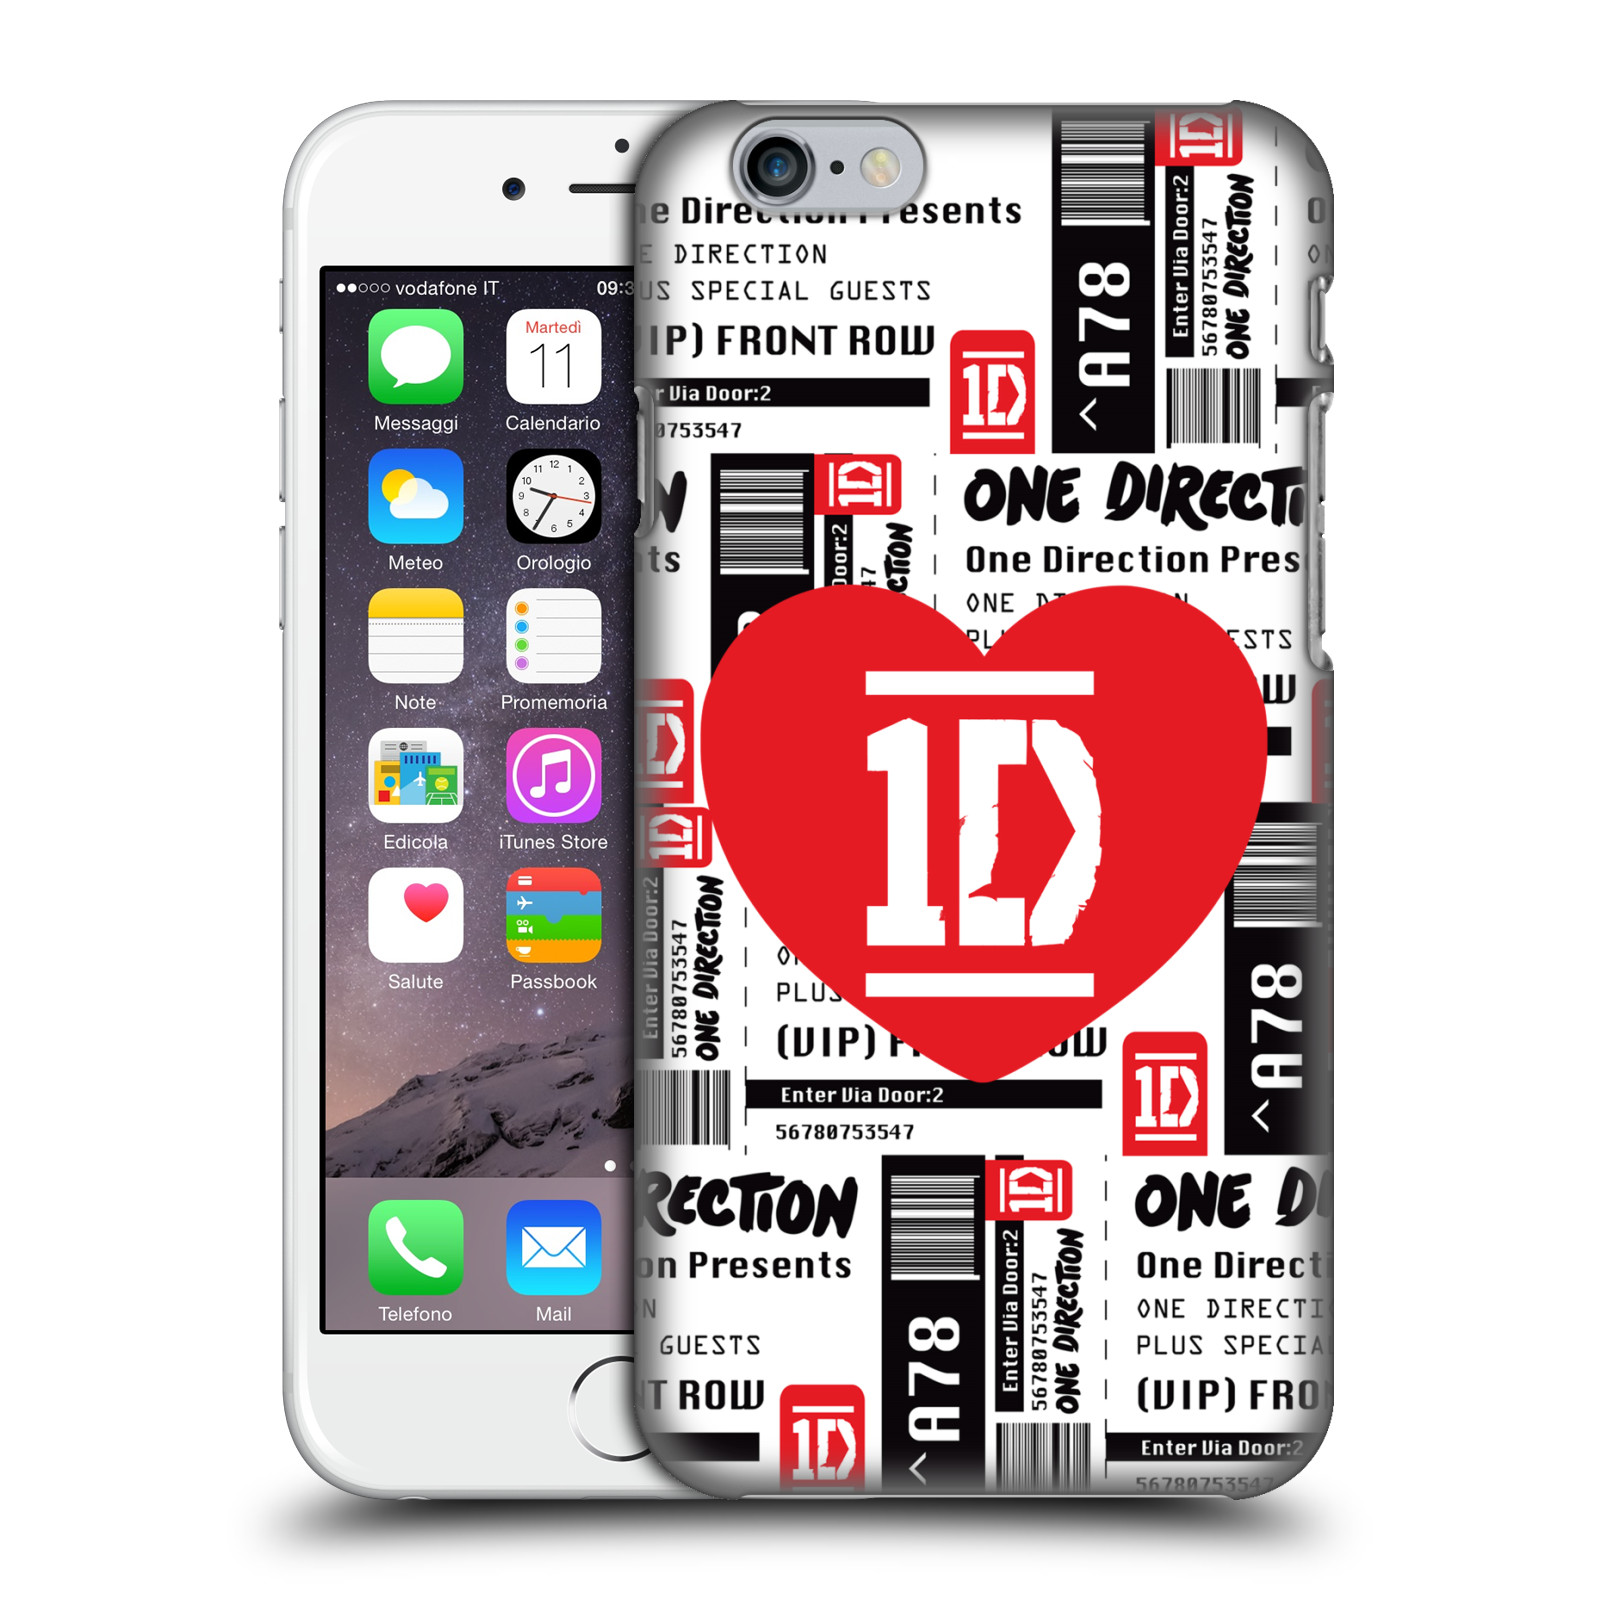 OFFICIAL-ONE-DIRECTION-1D-TICKET-LOVE-HARD-BACK-CASE-FOR-APPLE-iPHONE-PHONES